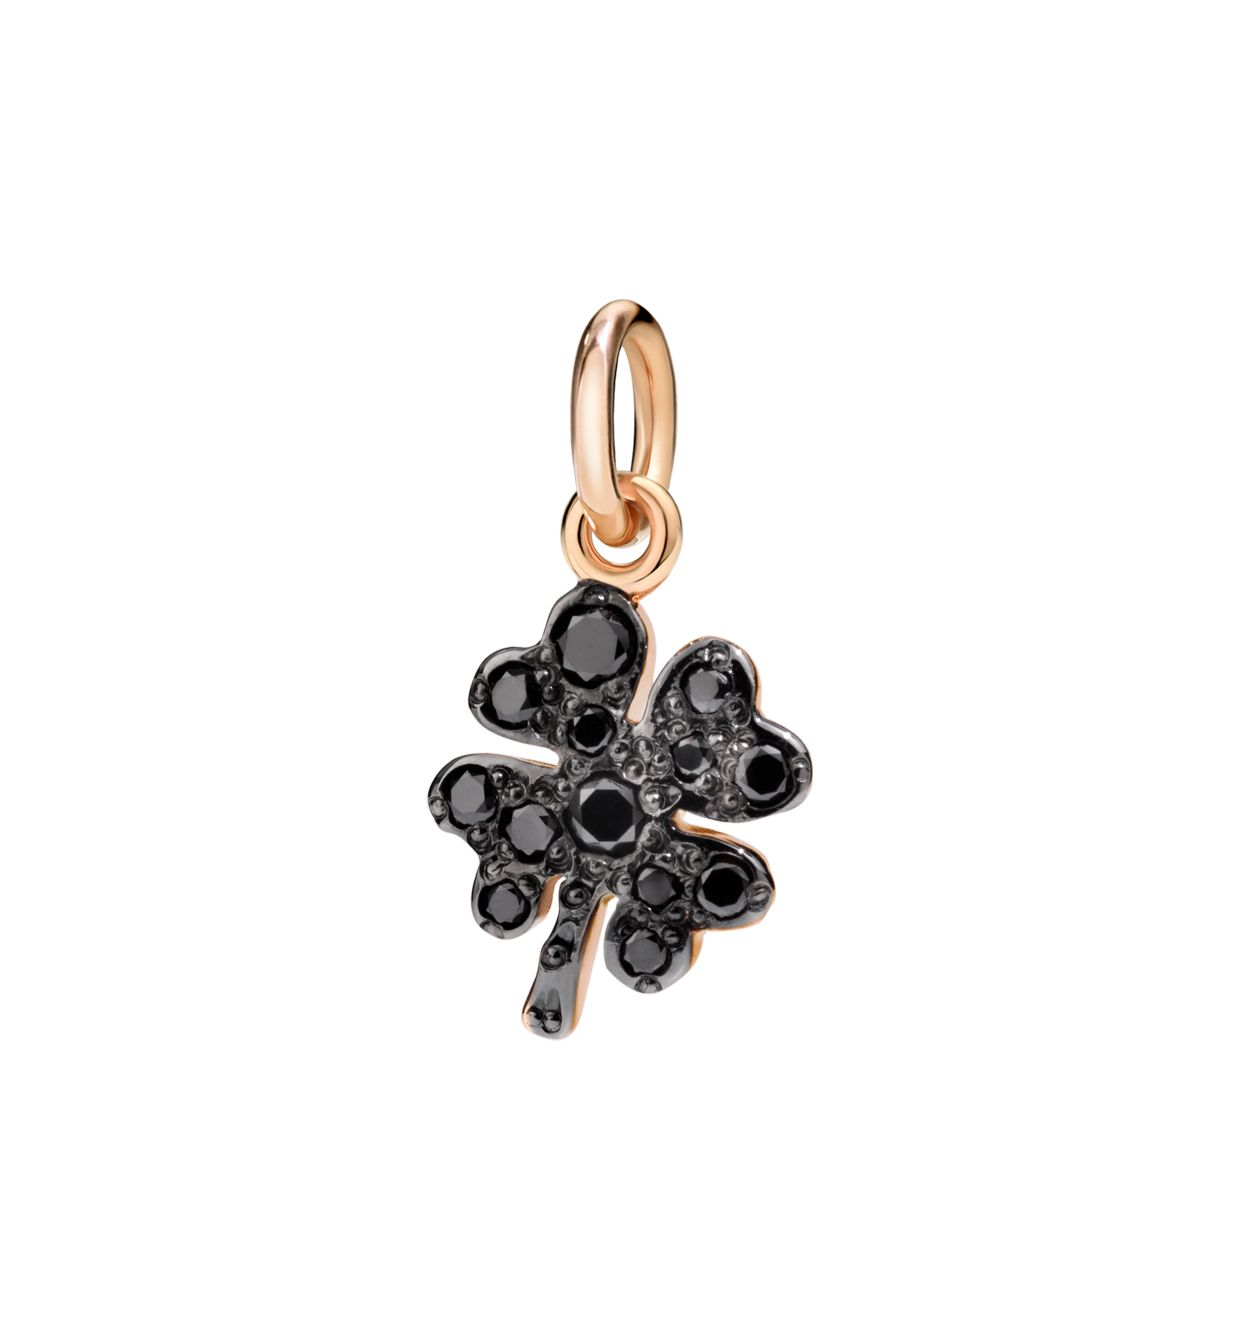 DoDo Four Leaf Clover in 9k Rose Gold with Black Diamonds - Orsini Jewellers NZ